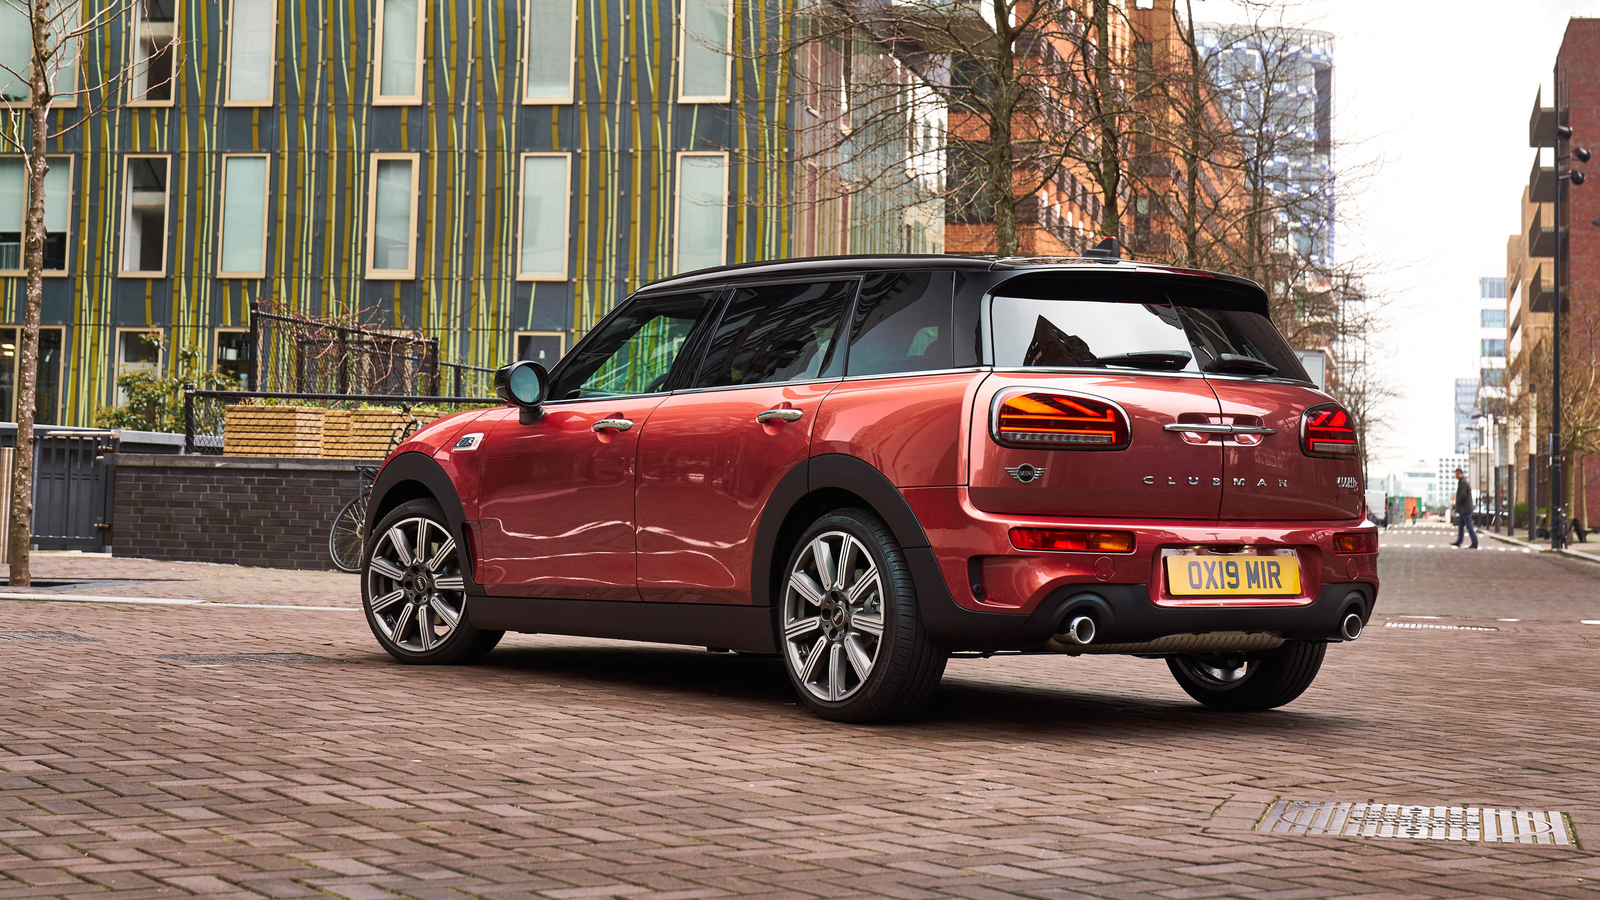 54 All New 2020 Mini Clubman Wallpaper